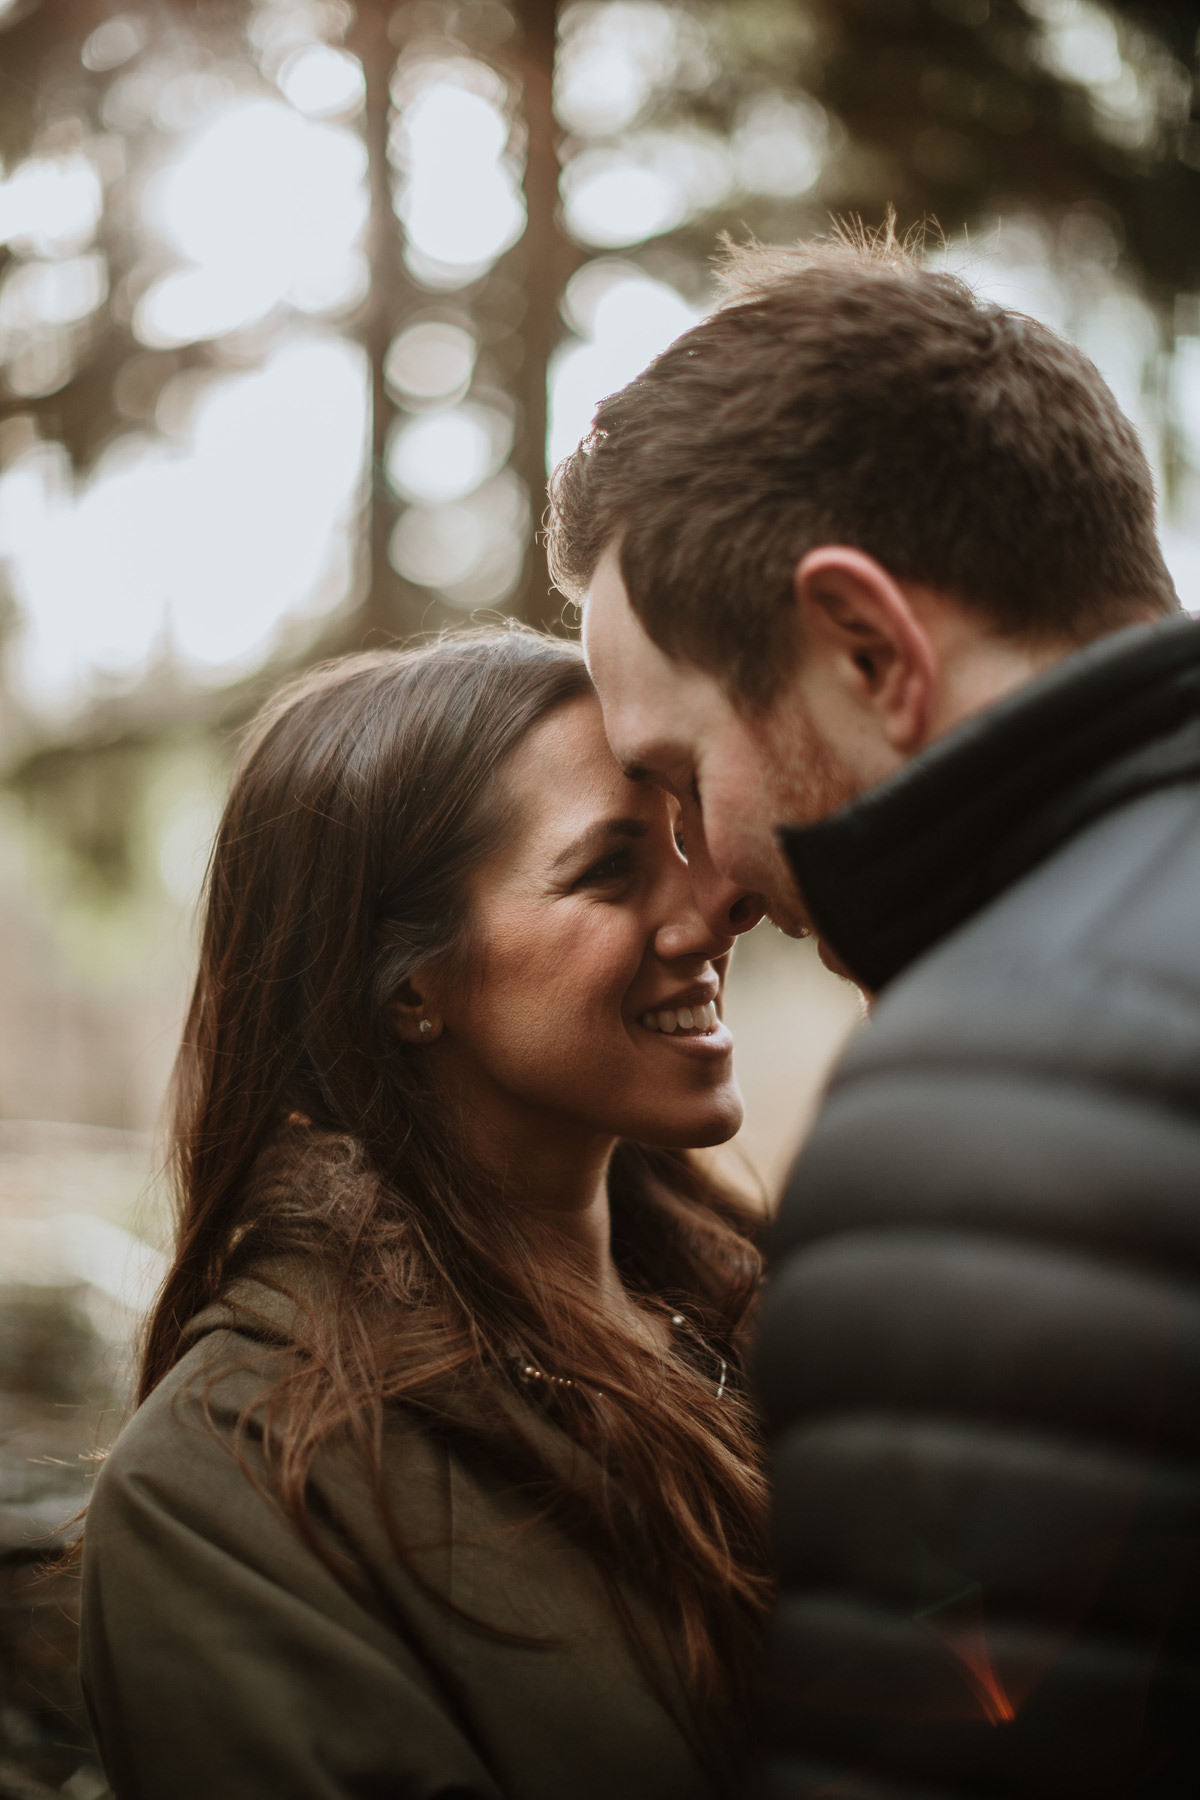 Wyre Forest engagement photo shoot